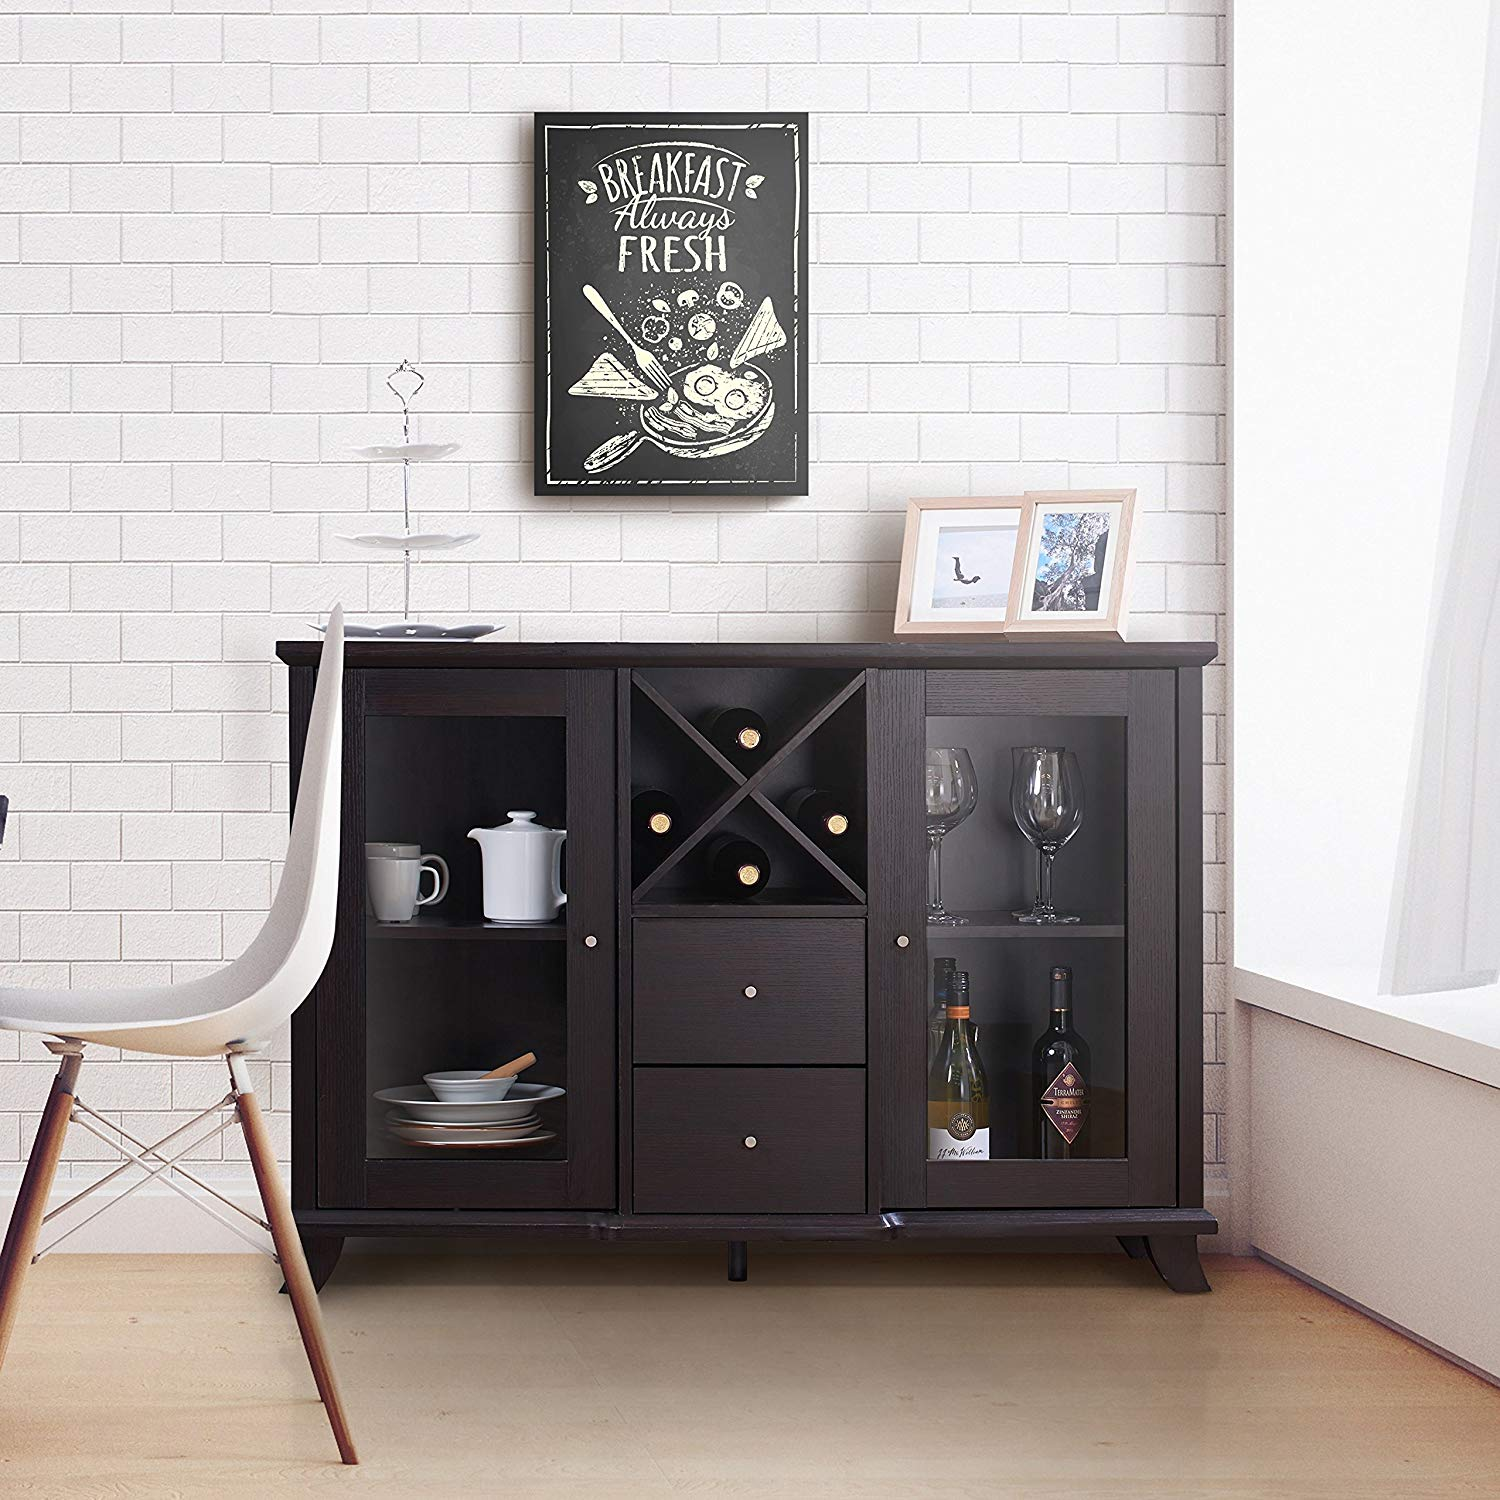 Cheap Metal Storage Cabinets With Drawers, find Metal ...